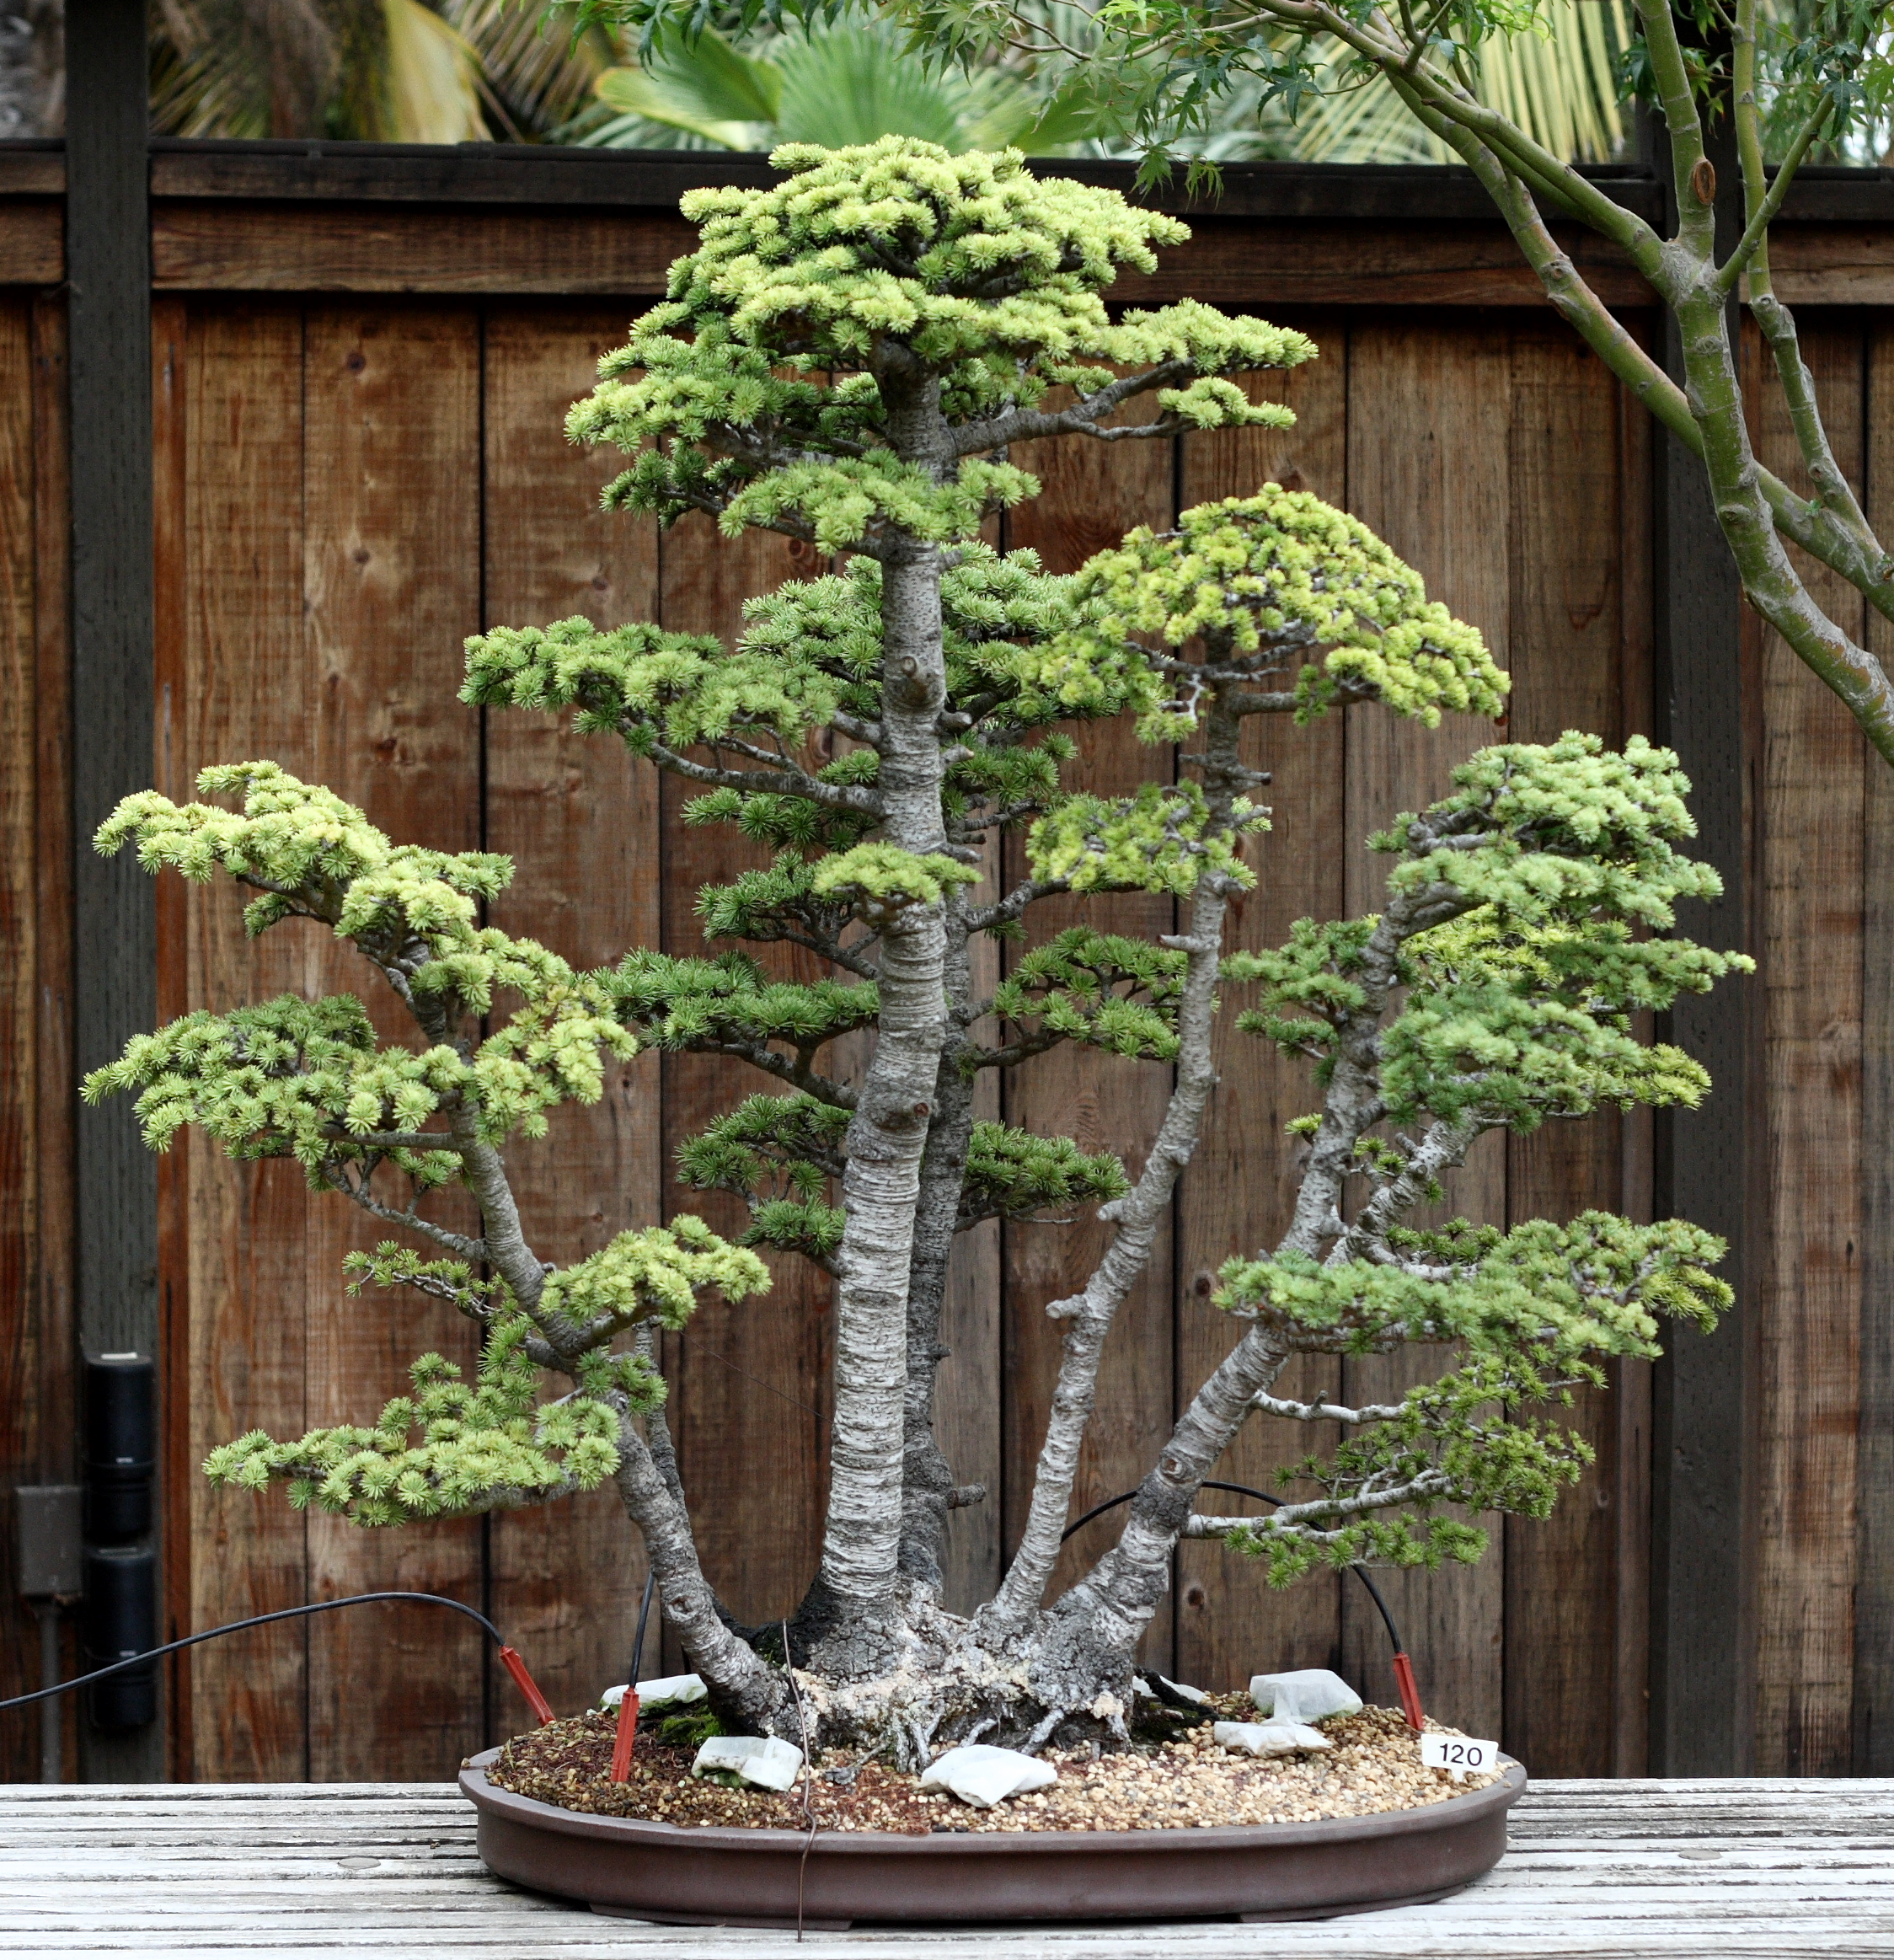 Backyard Bonsai Trees :  bonsai 120 of the golden state bonsai federation collection north in